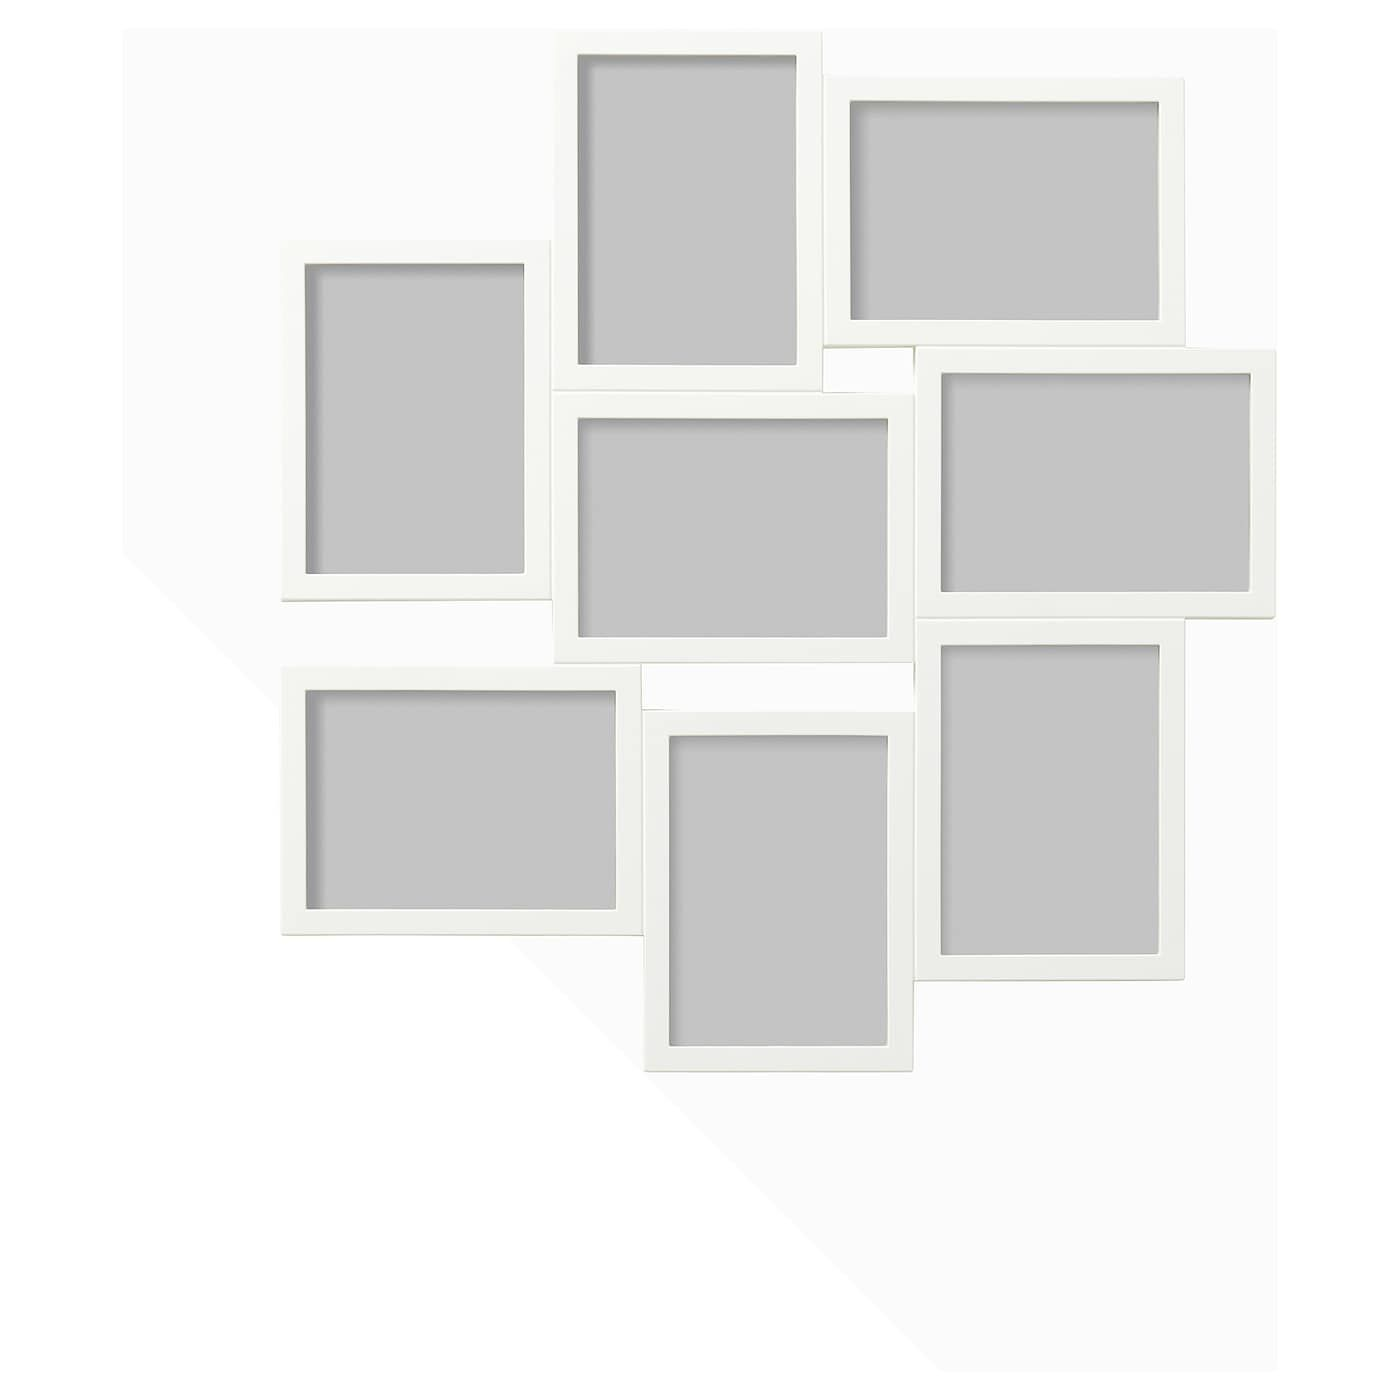 Ikea Vaxbo White Collage Frame For 8 Photos In 2020 Collage Frames Ikea Frames Ikea